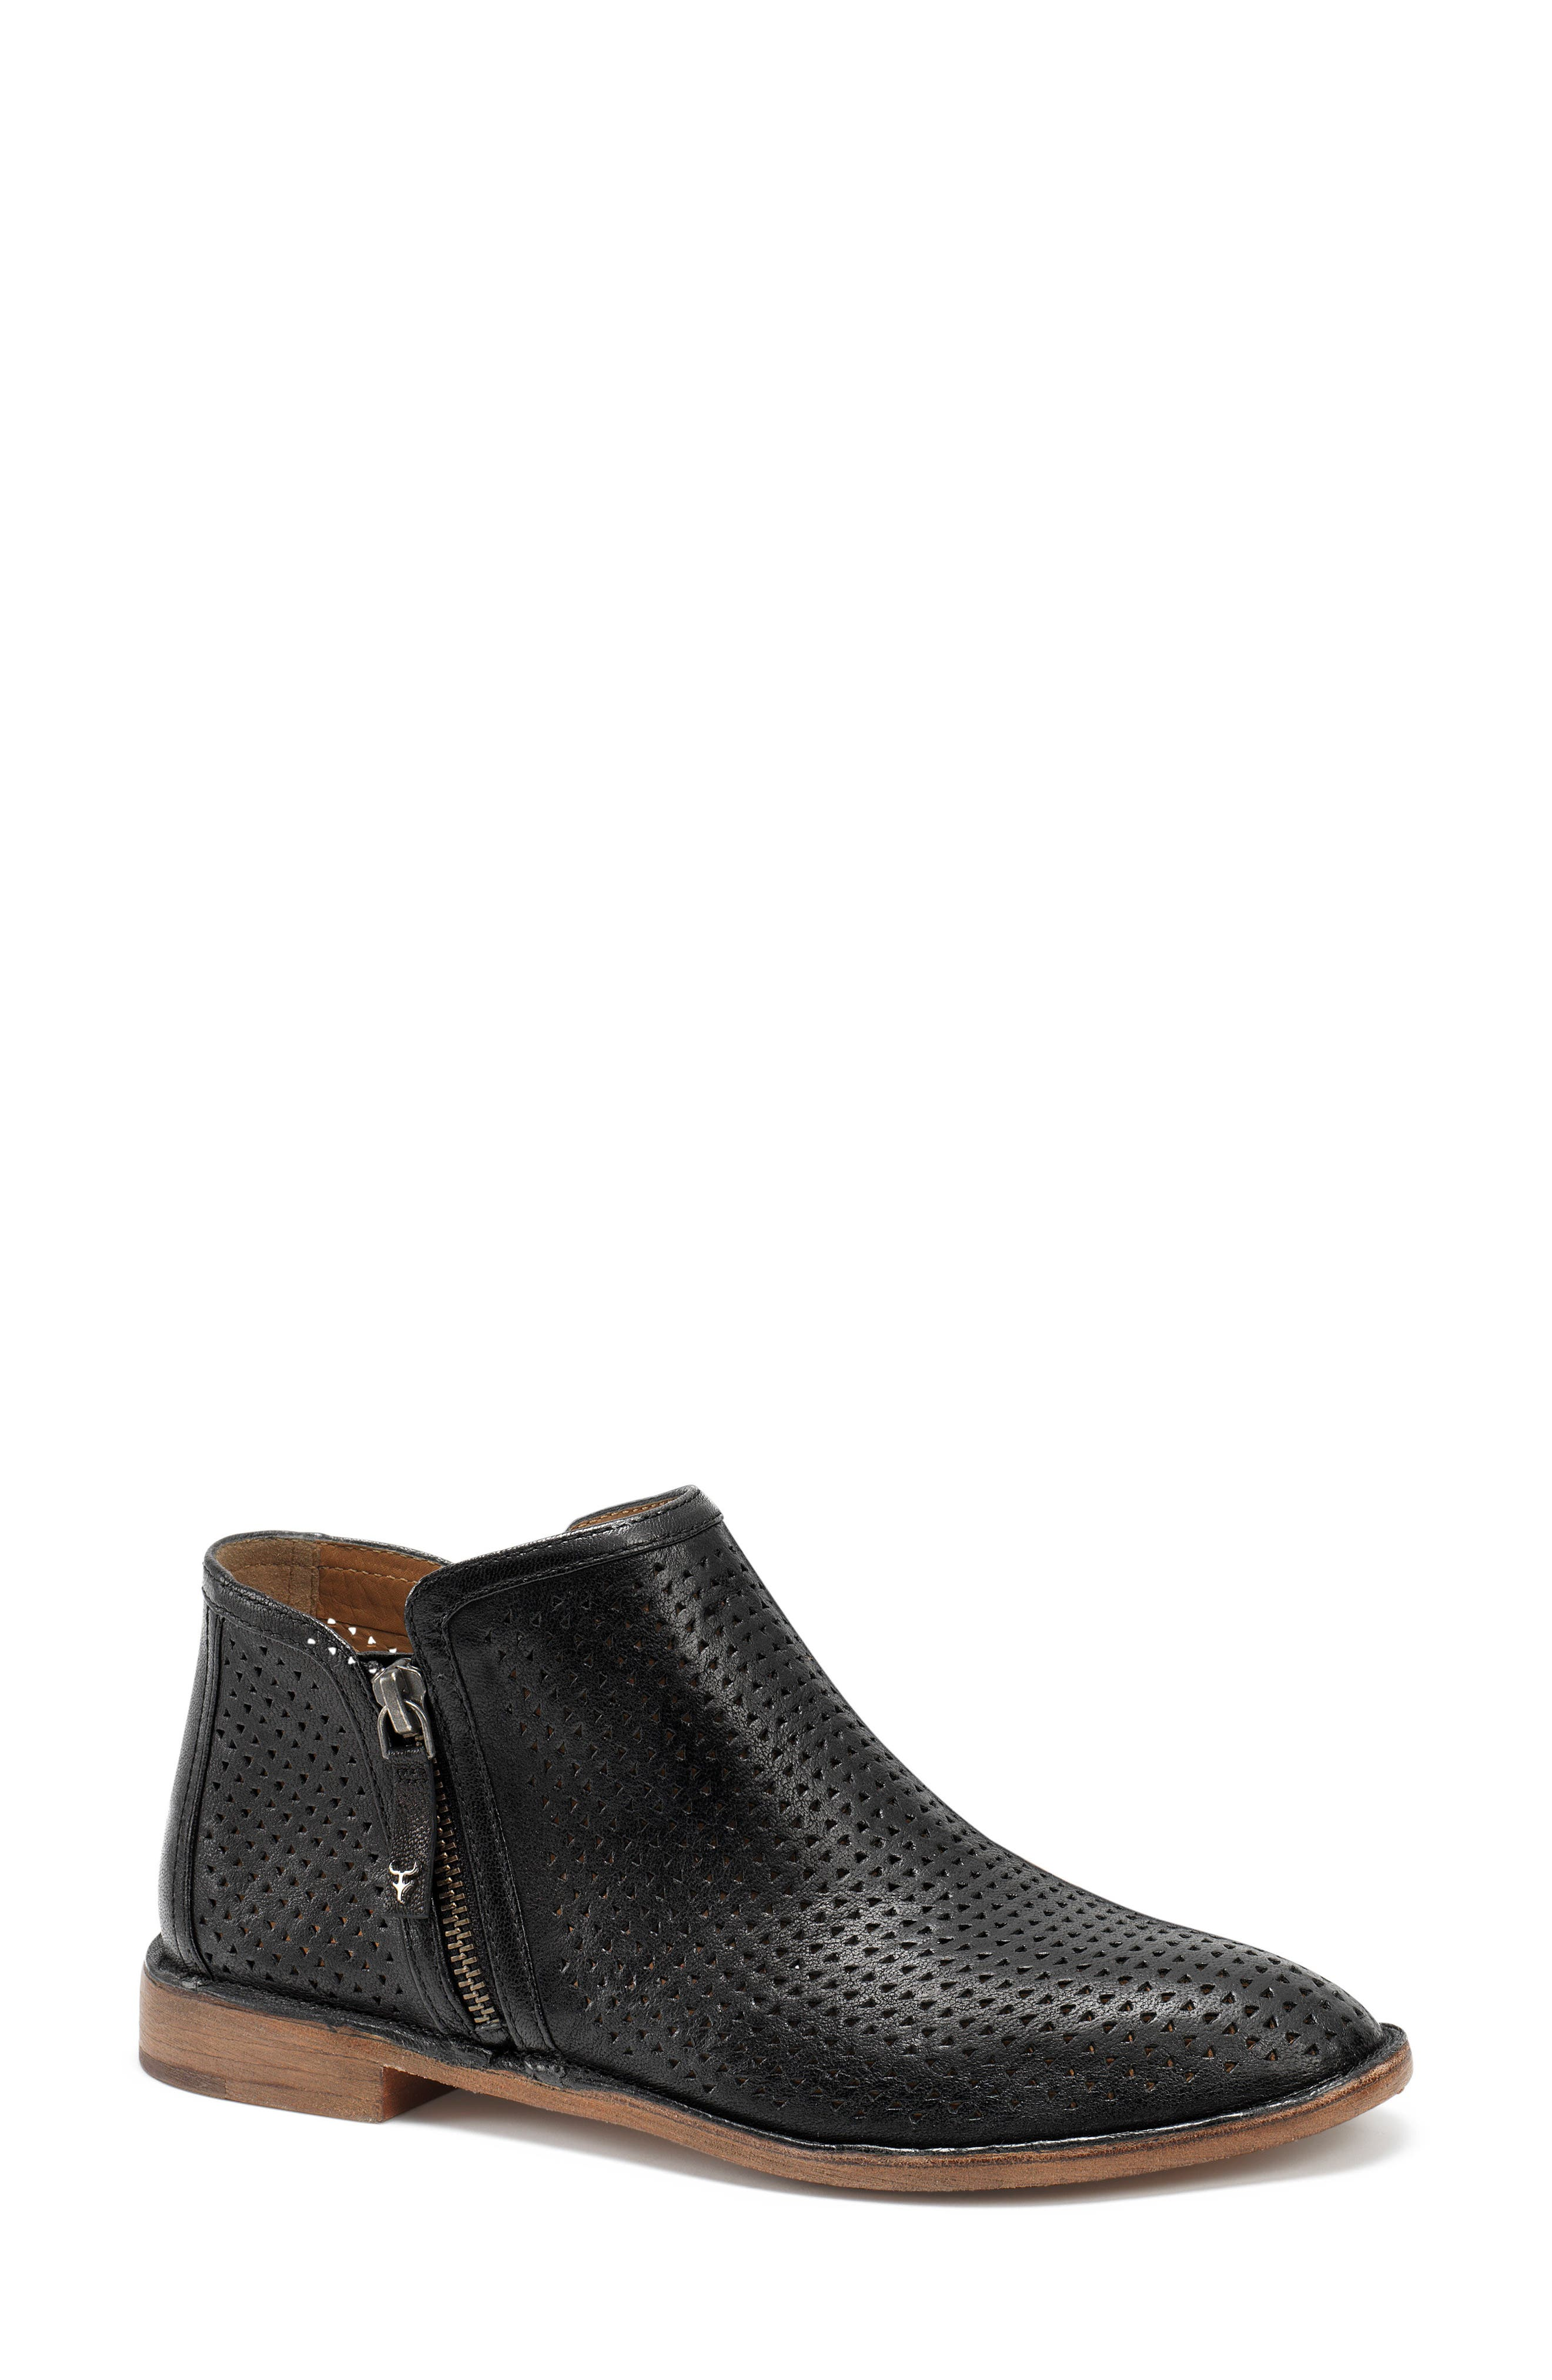 Addison Low Perforated Bootie,                             Main thumbnail 1, color,                             Black Leather